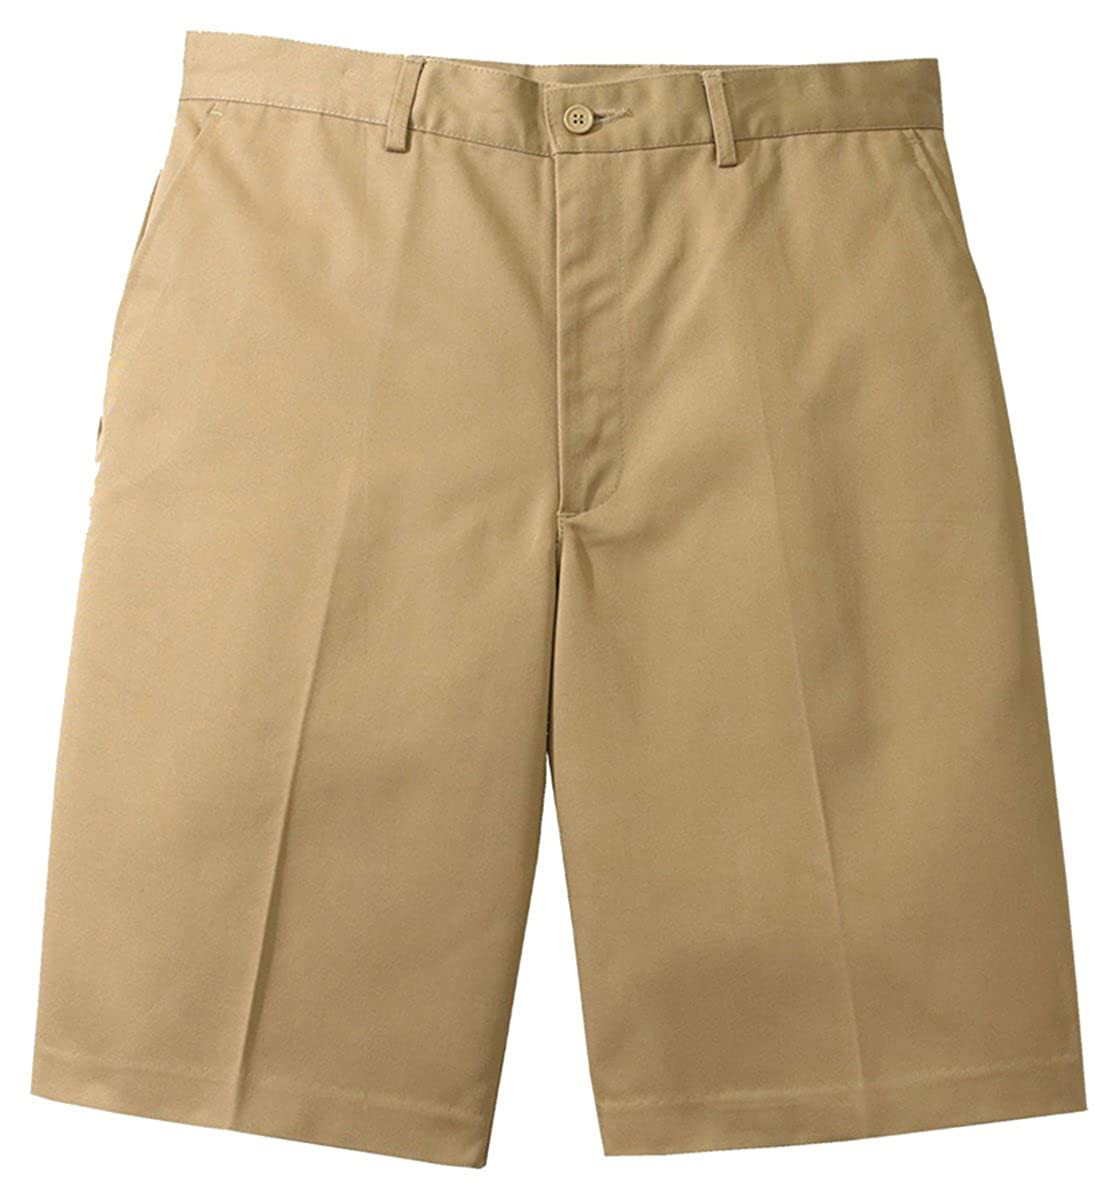 Edwards Garment Men's Flat Front Casual Chino Blend Short 2487